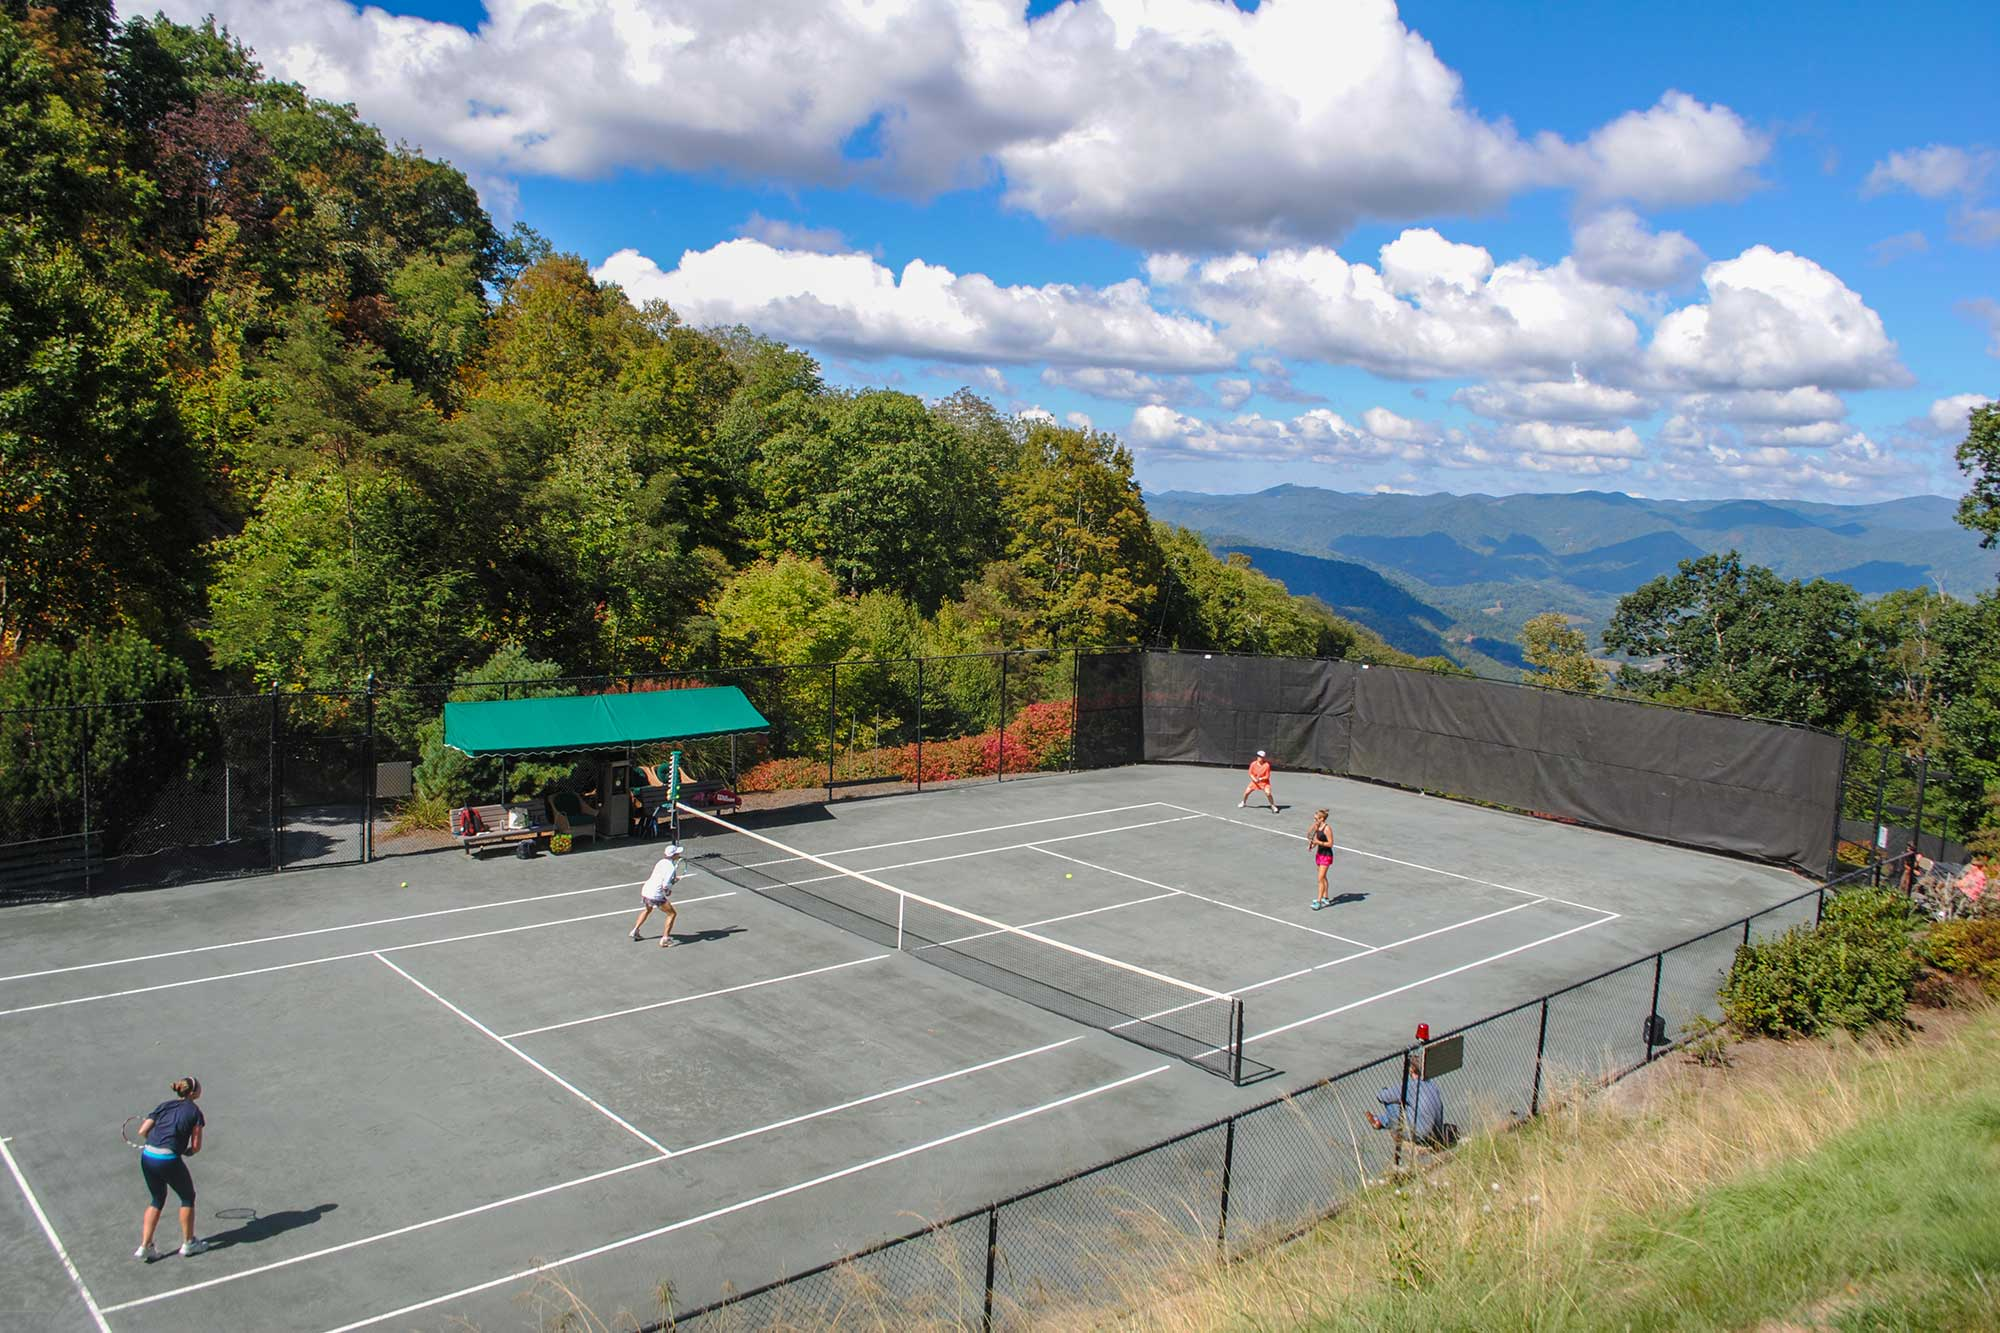 Scenic View At Mountain Air Country Club Tennis Court Burnsville NC